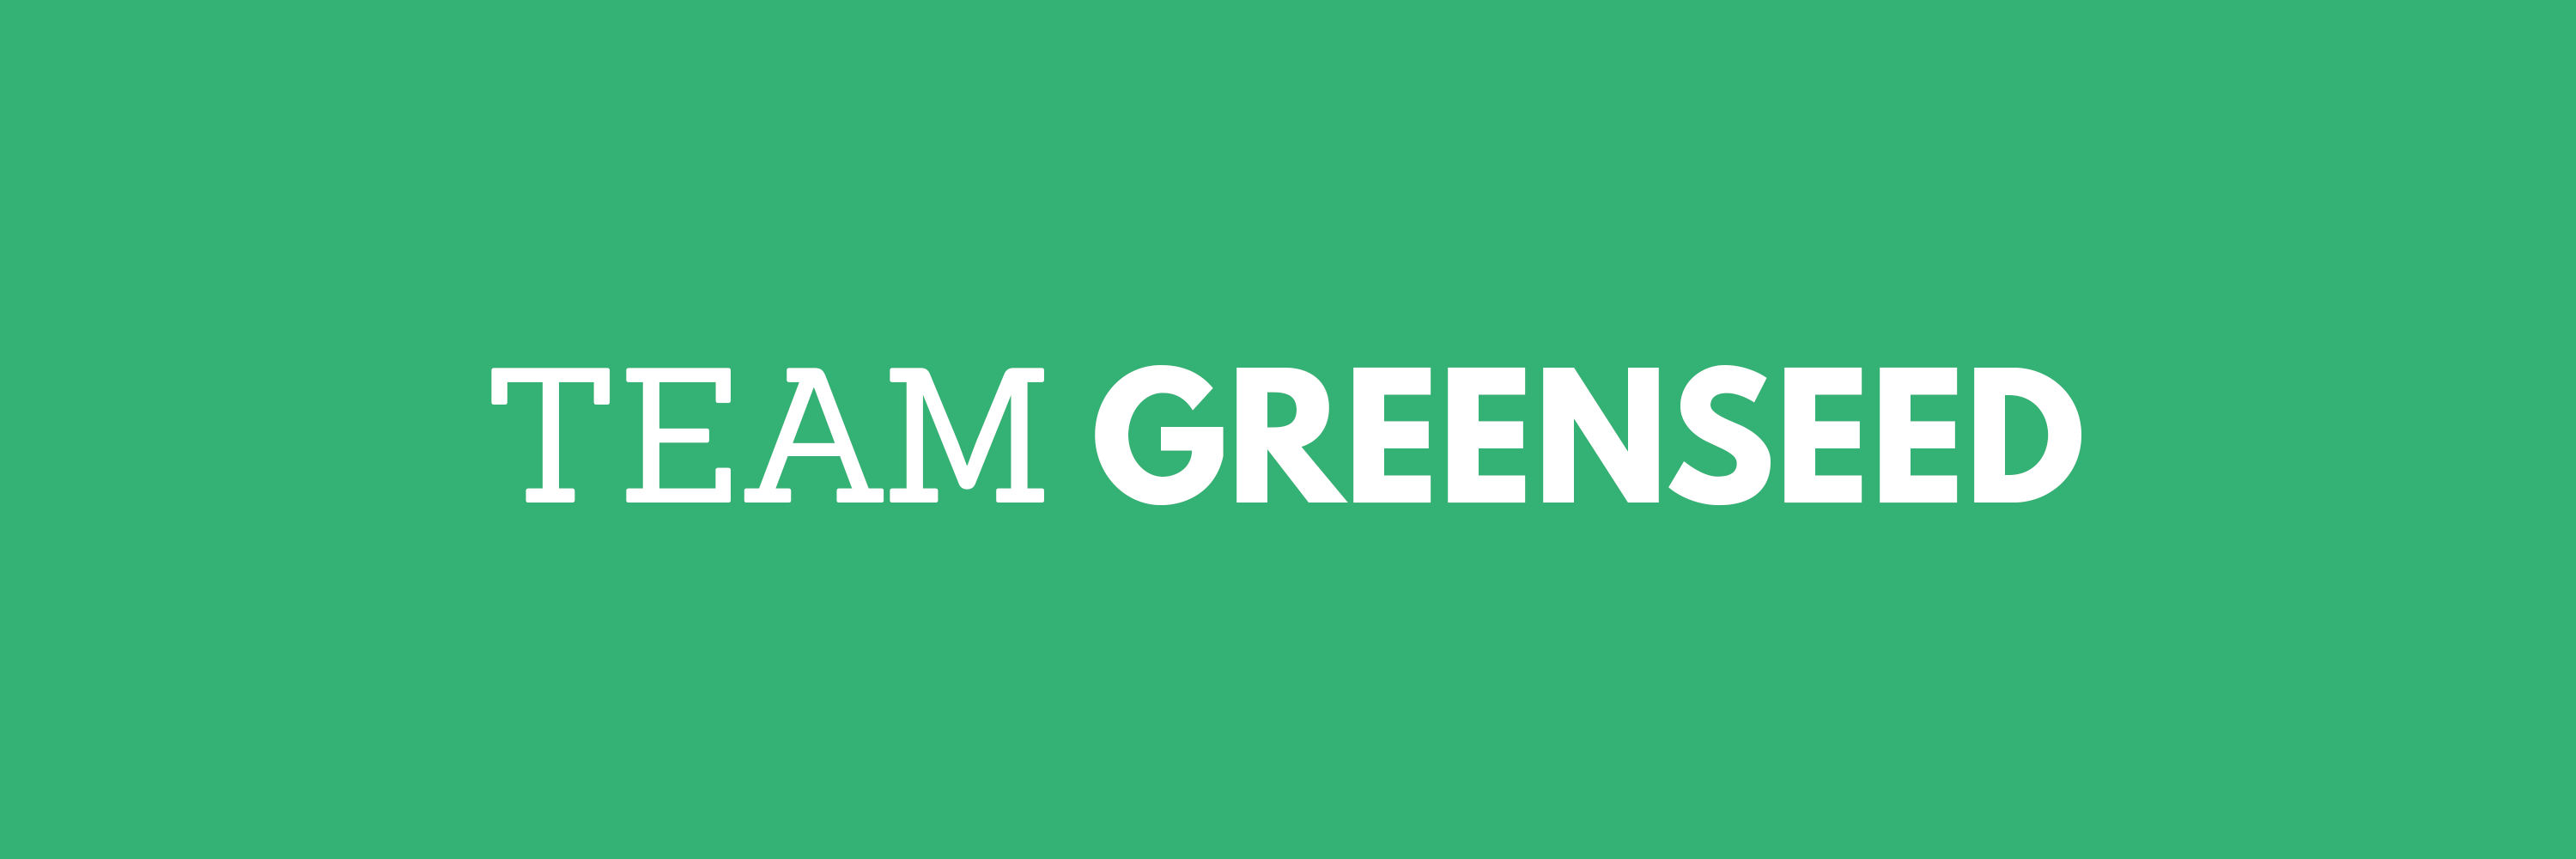 Team-Greenseed